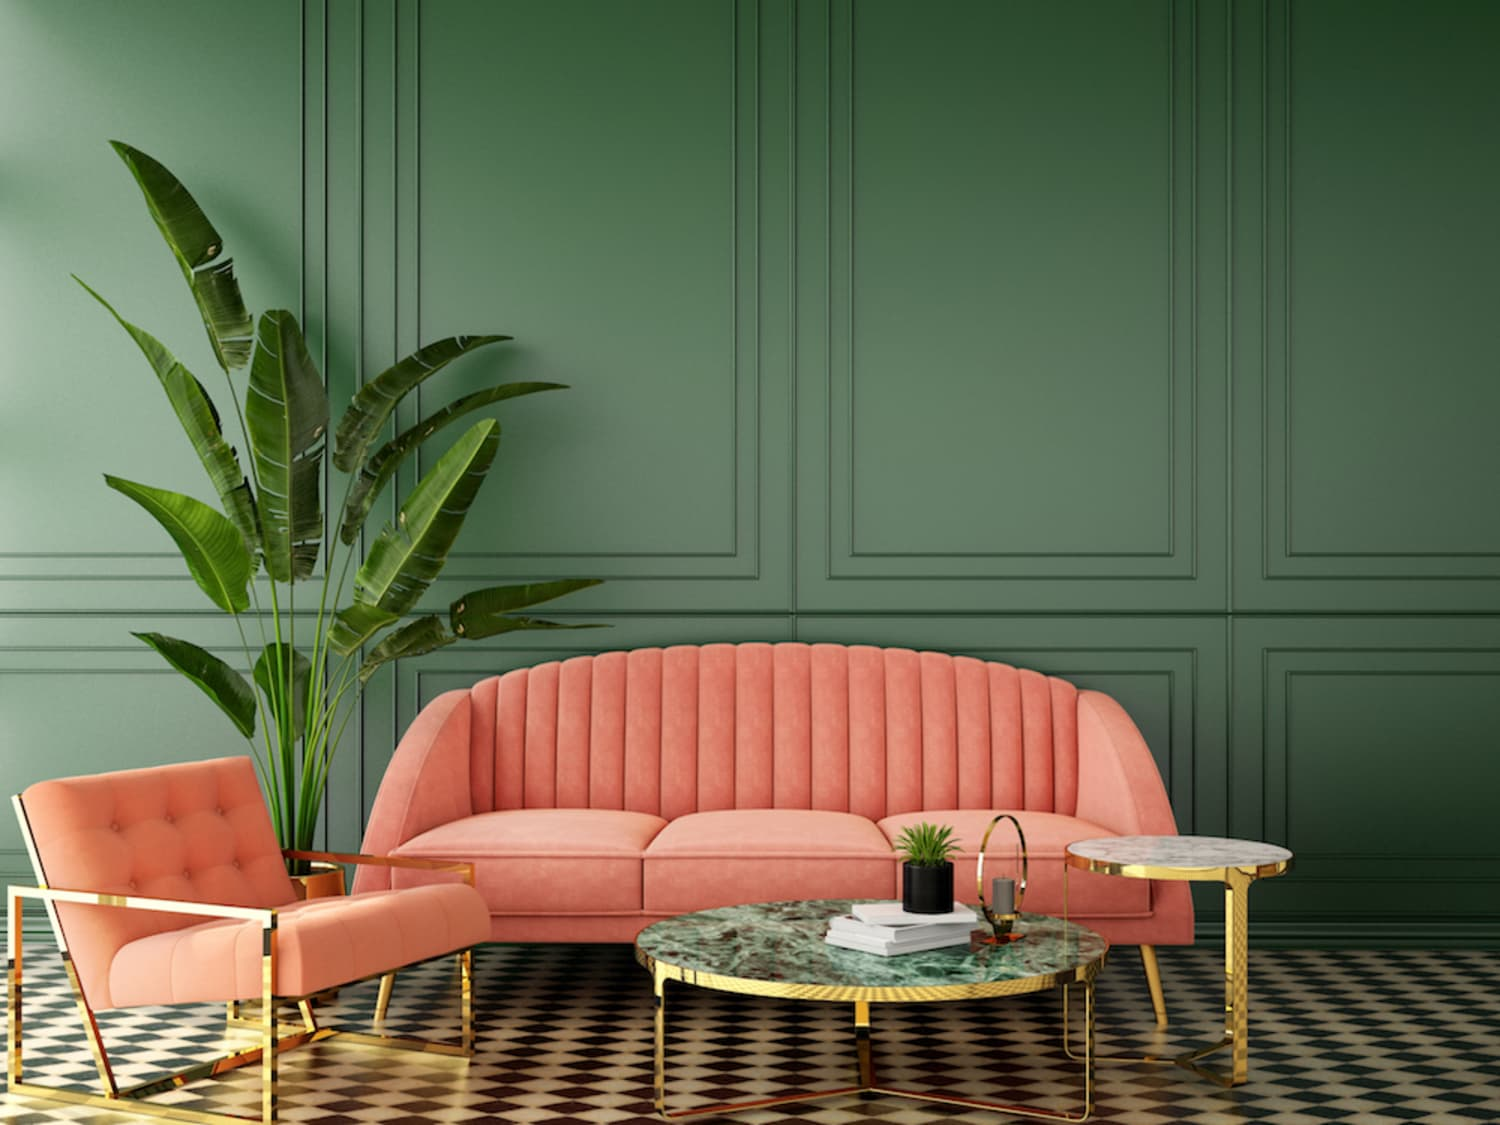 Pantone Released Its Color Trend Report For Spring/Summer 2021